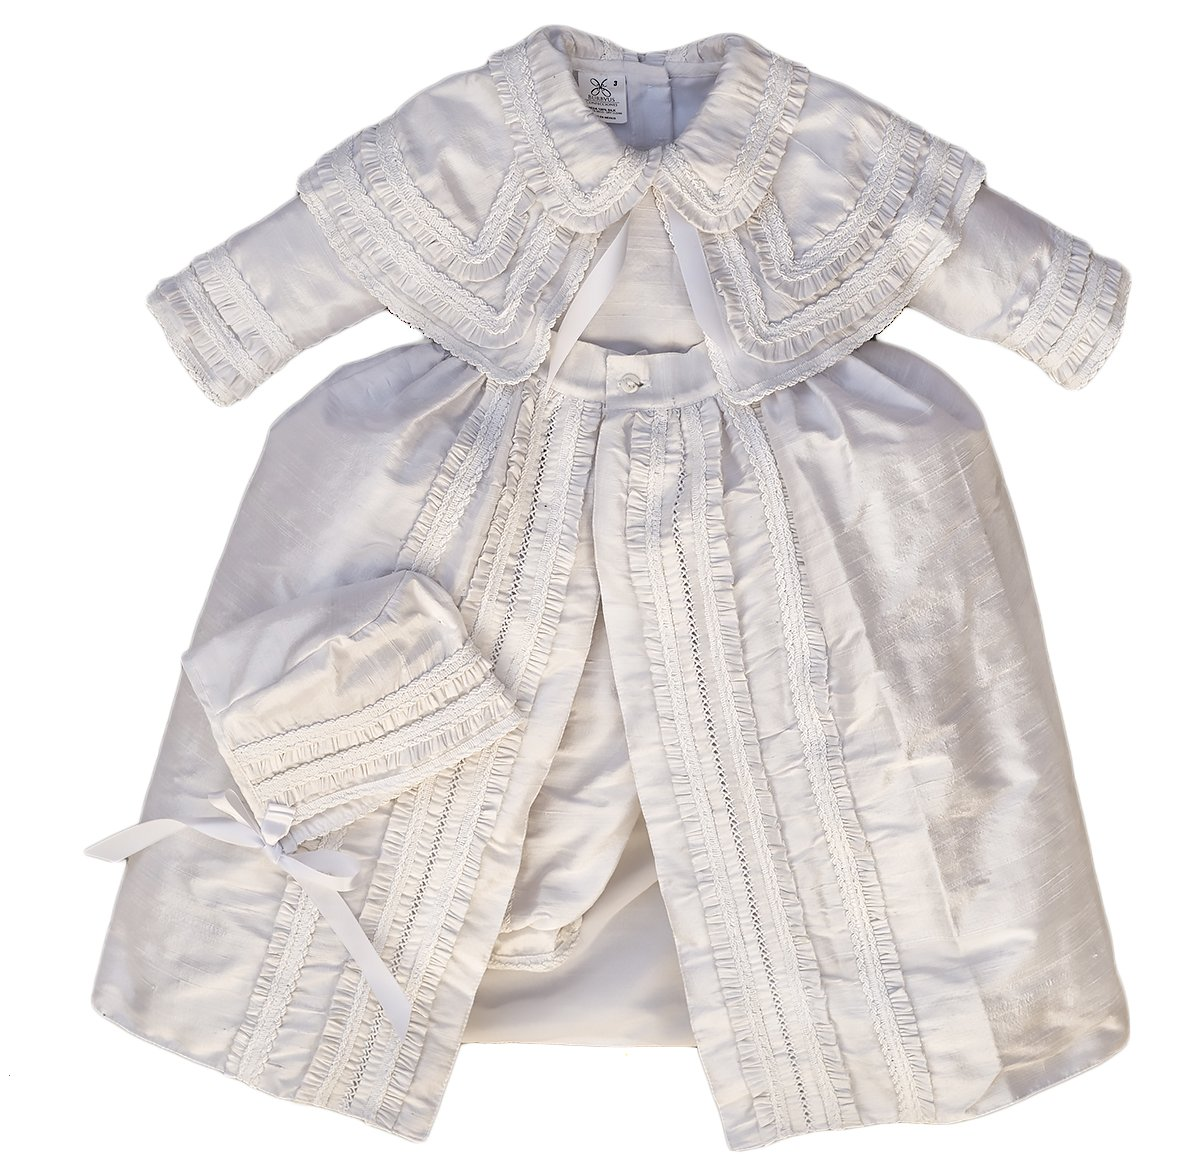 Heirloom Baby Boy's Christening Baptism Gown, Hand Made White Burbvus Ropones by Burbvus (Image #1)